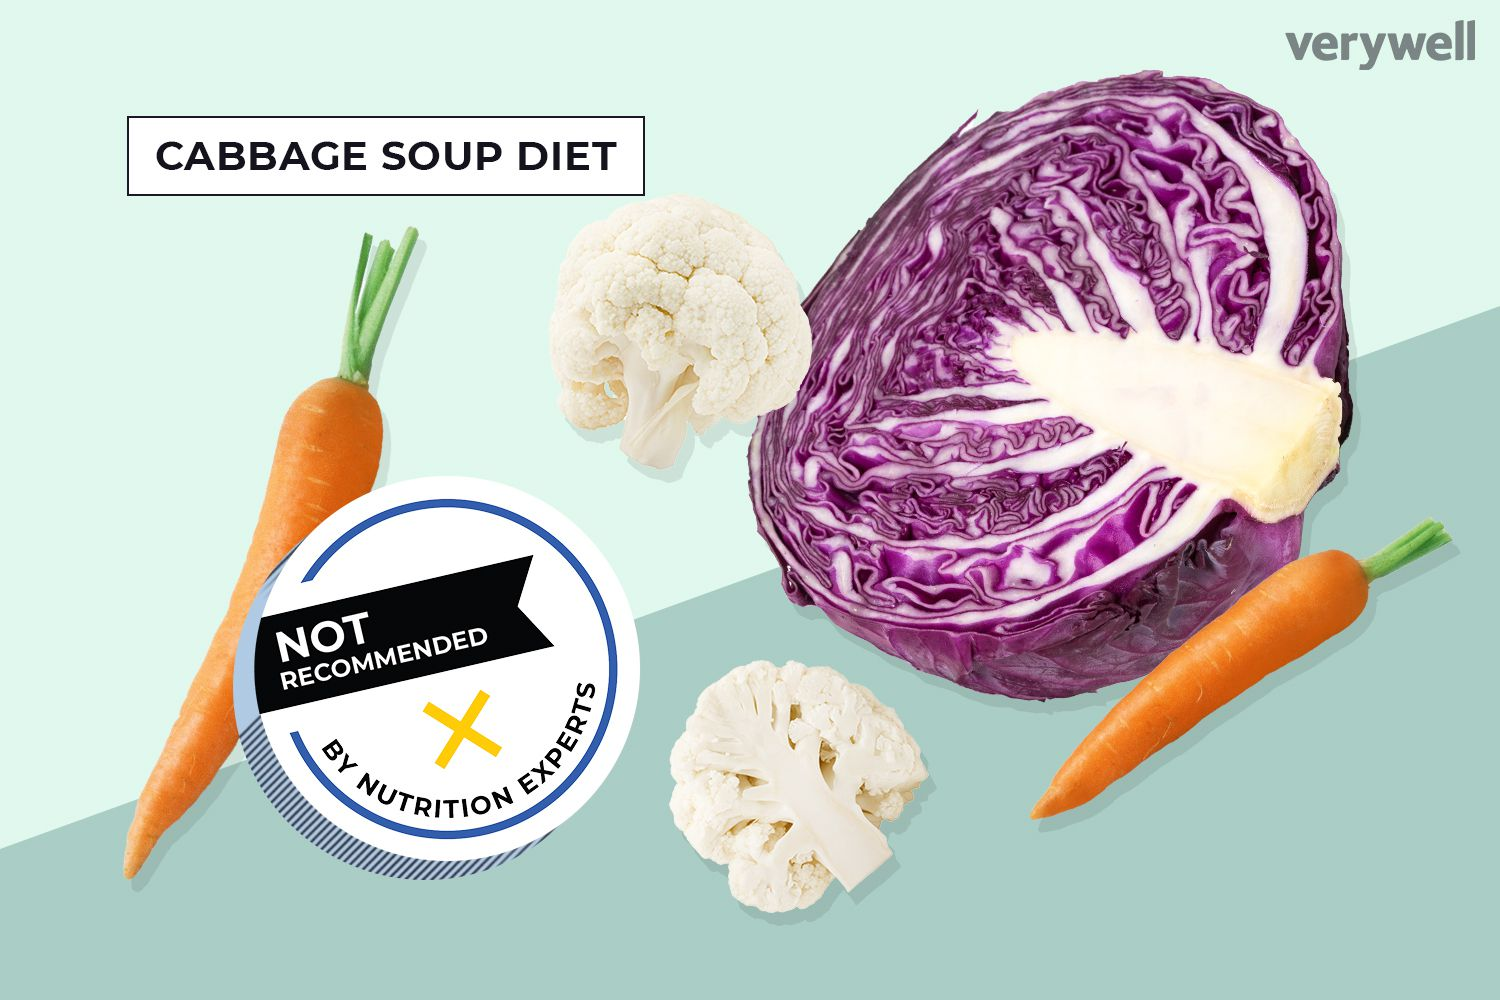 does the cabbage soup diet cause diarrhea